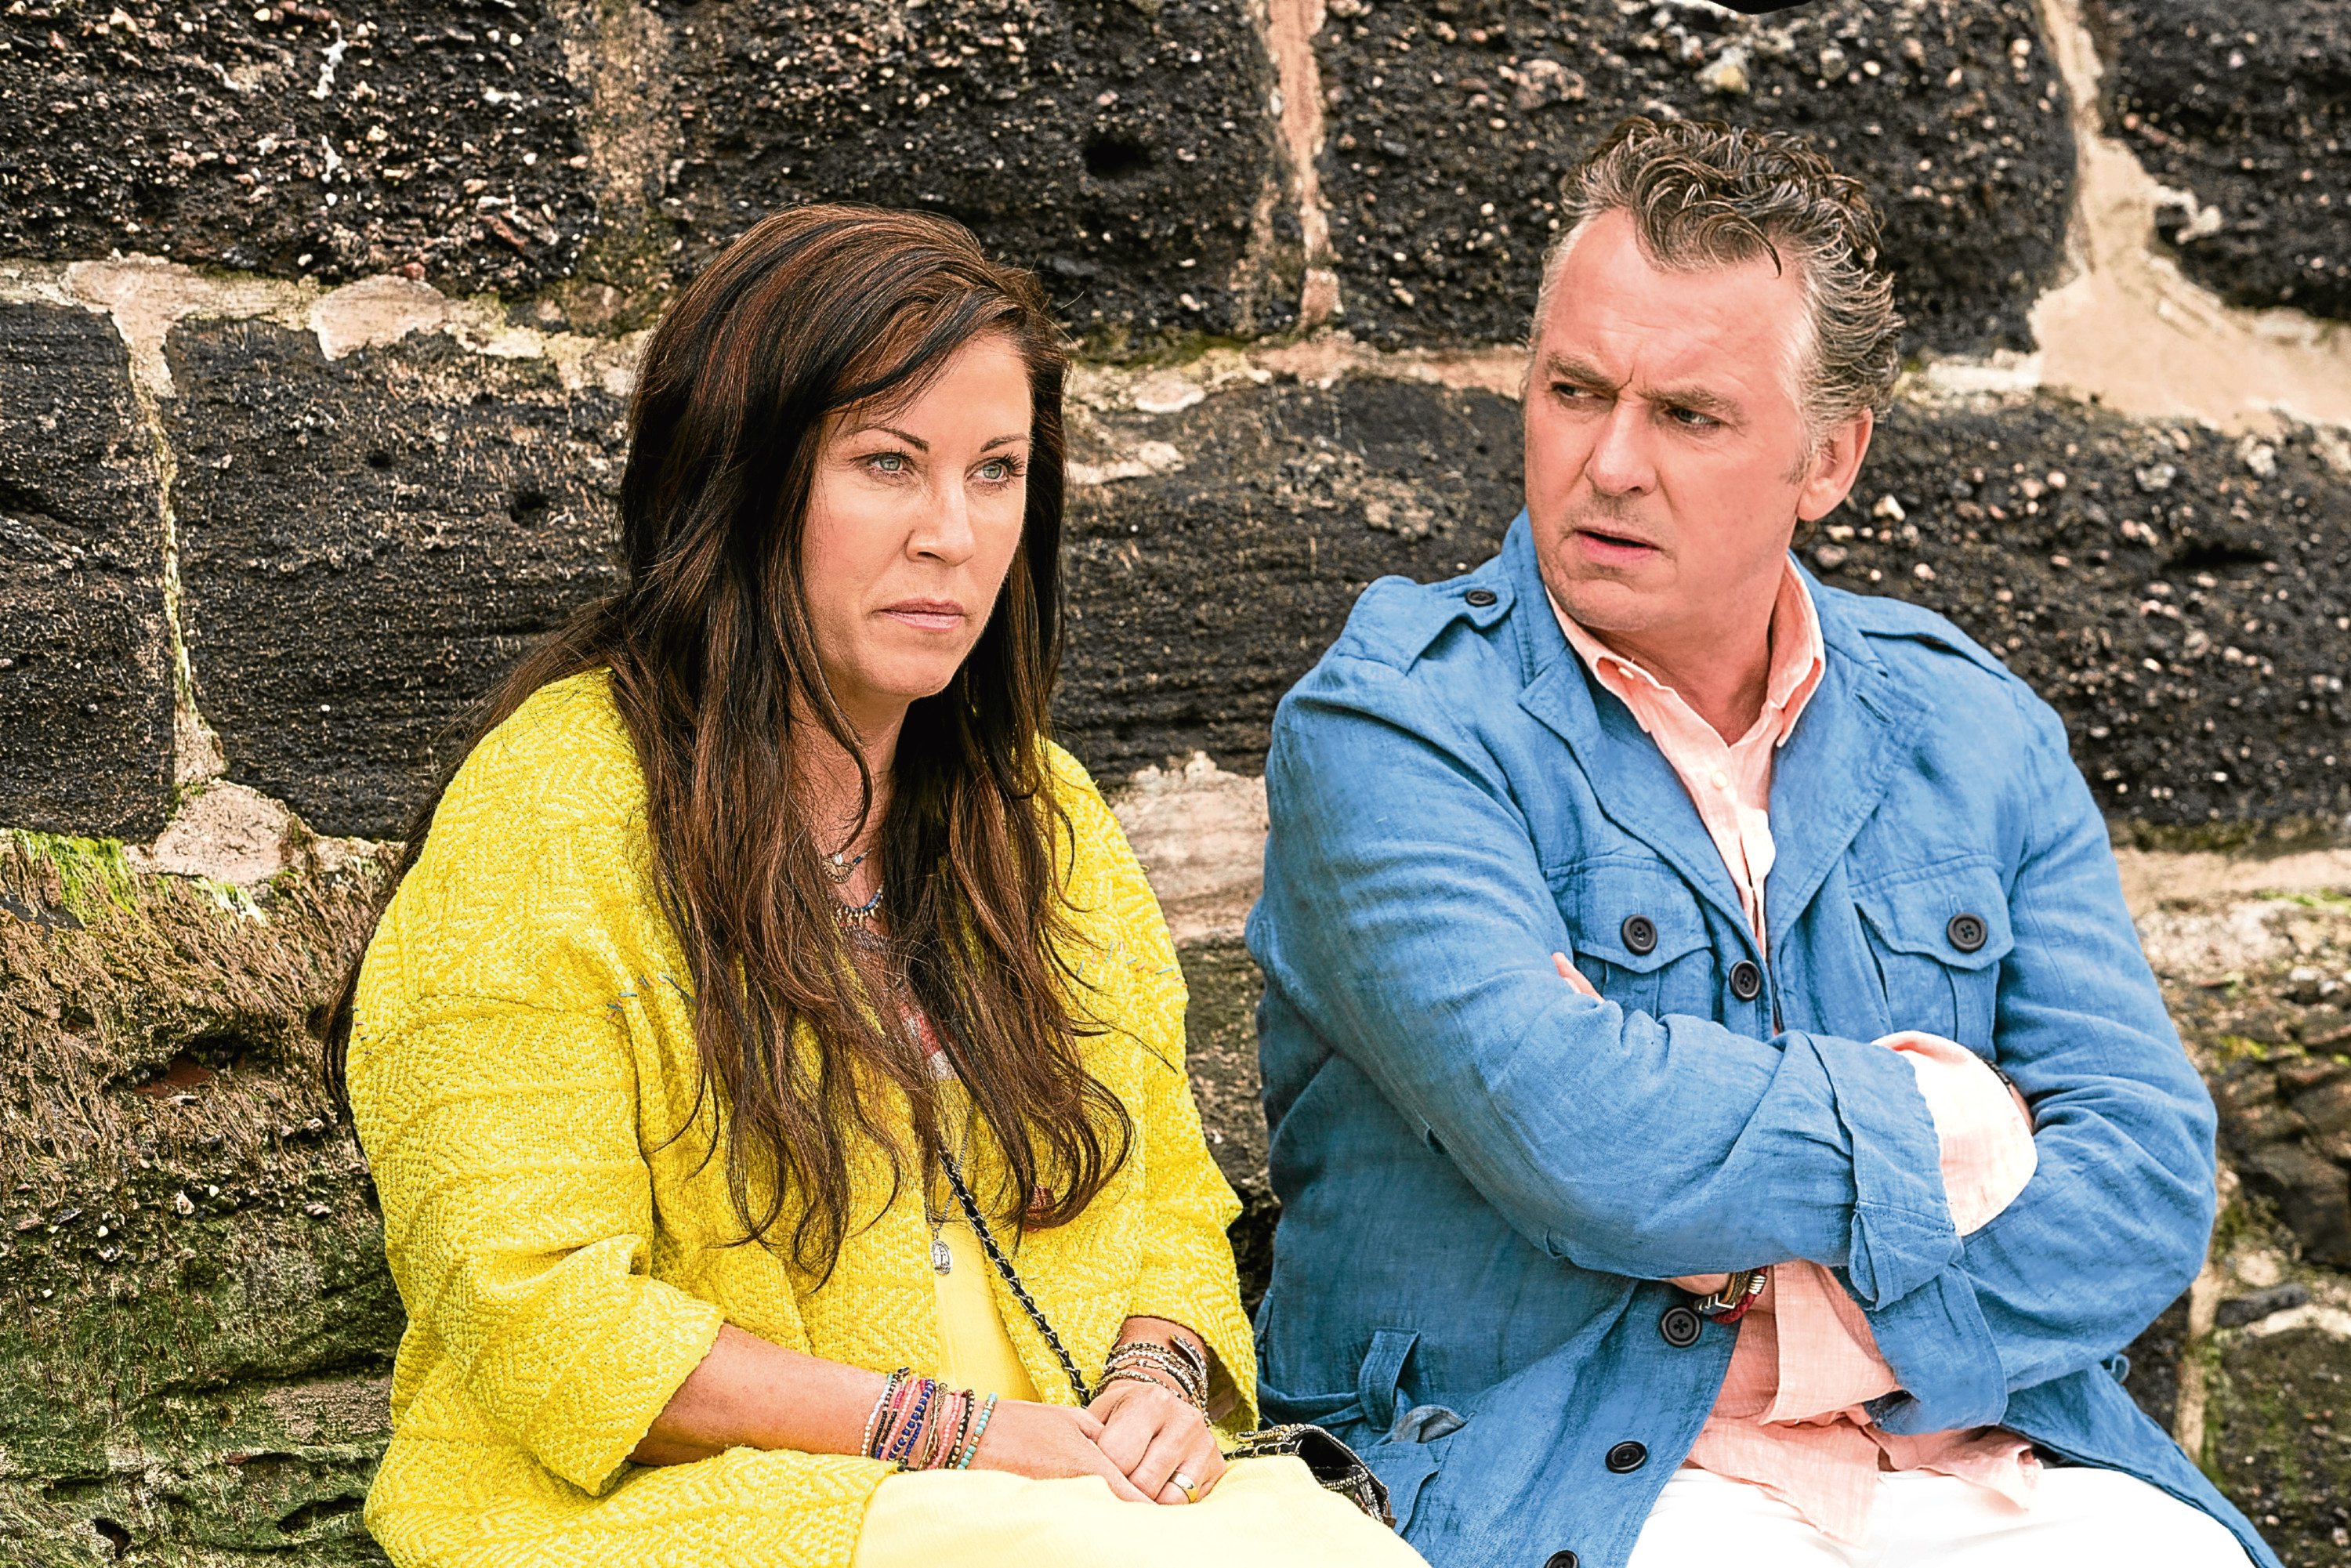 Shane Richie and Jessie Wallace reprise their roles as Kat and Alfie in Redwater (BBC / Patrick Redmond)